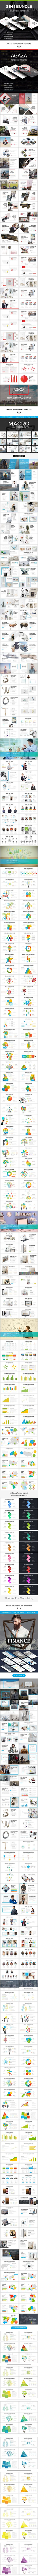 3 In 1 Creativer Powerpoint Template